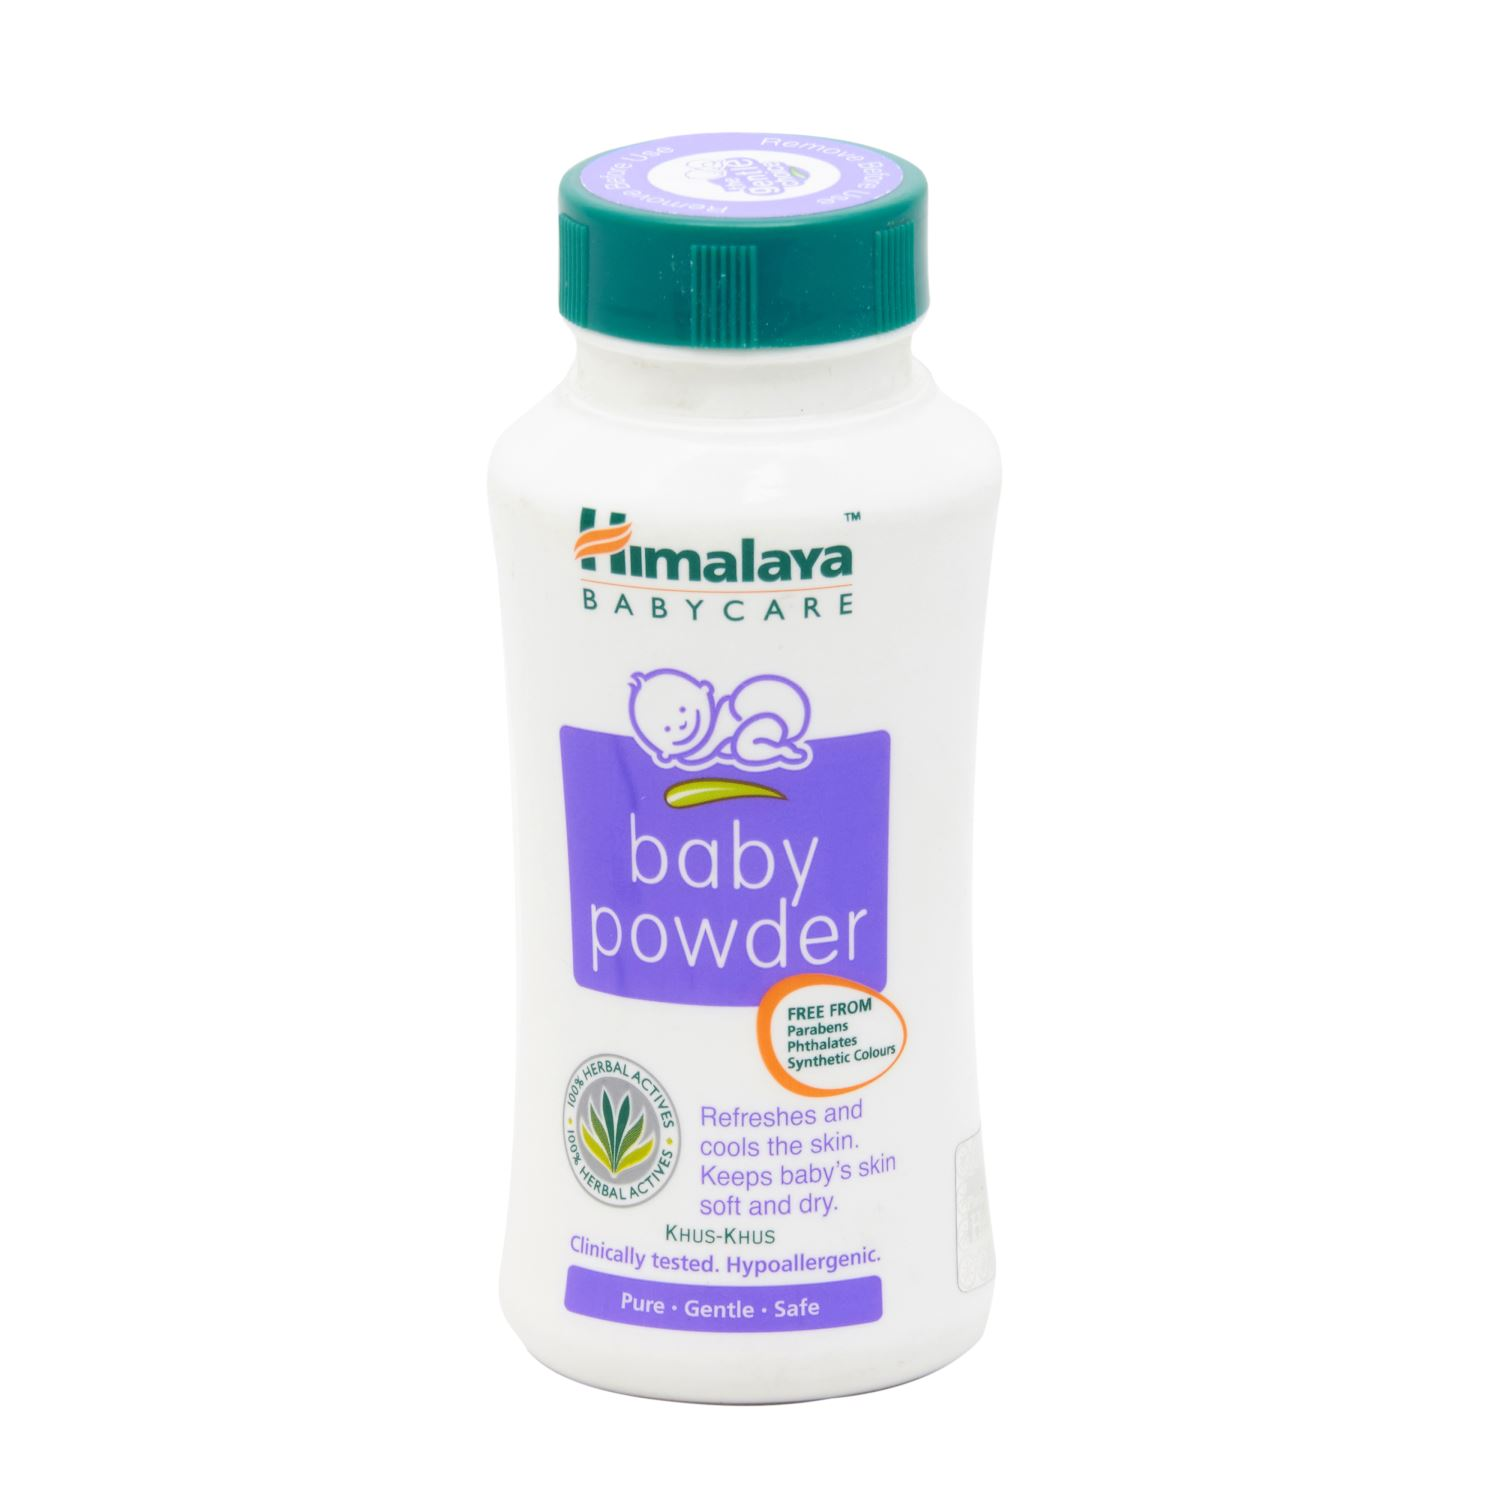 Himalaya Baby Powder - 50 gm